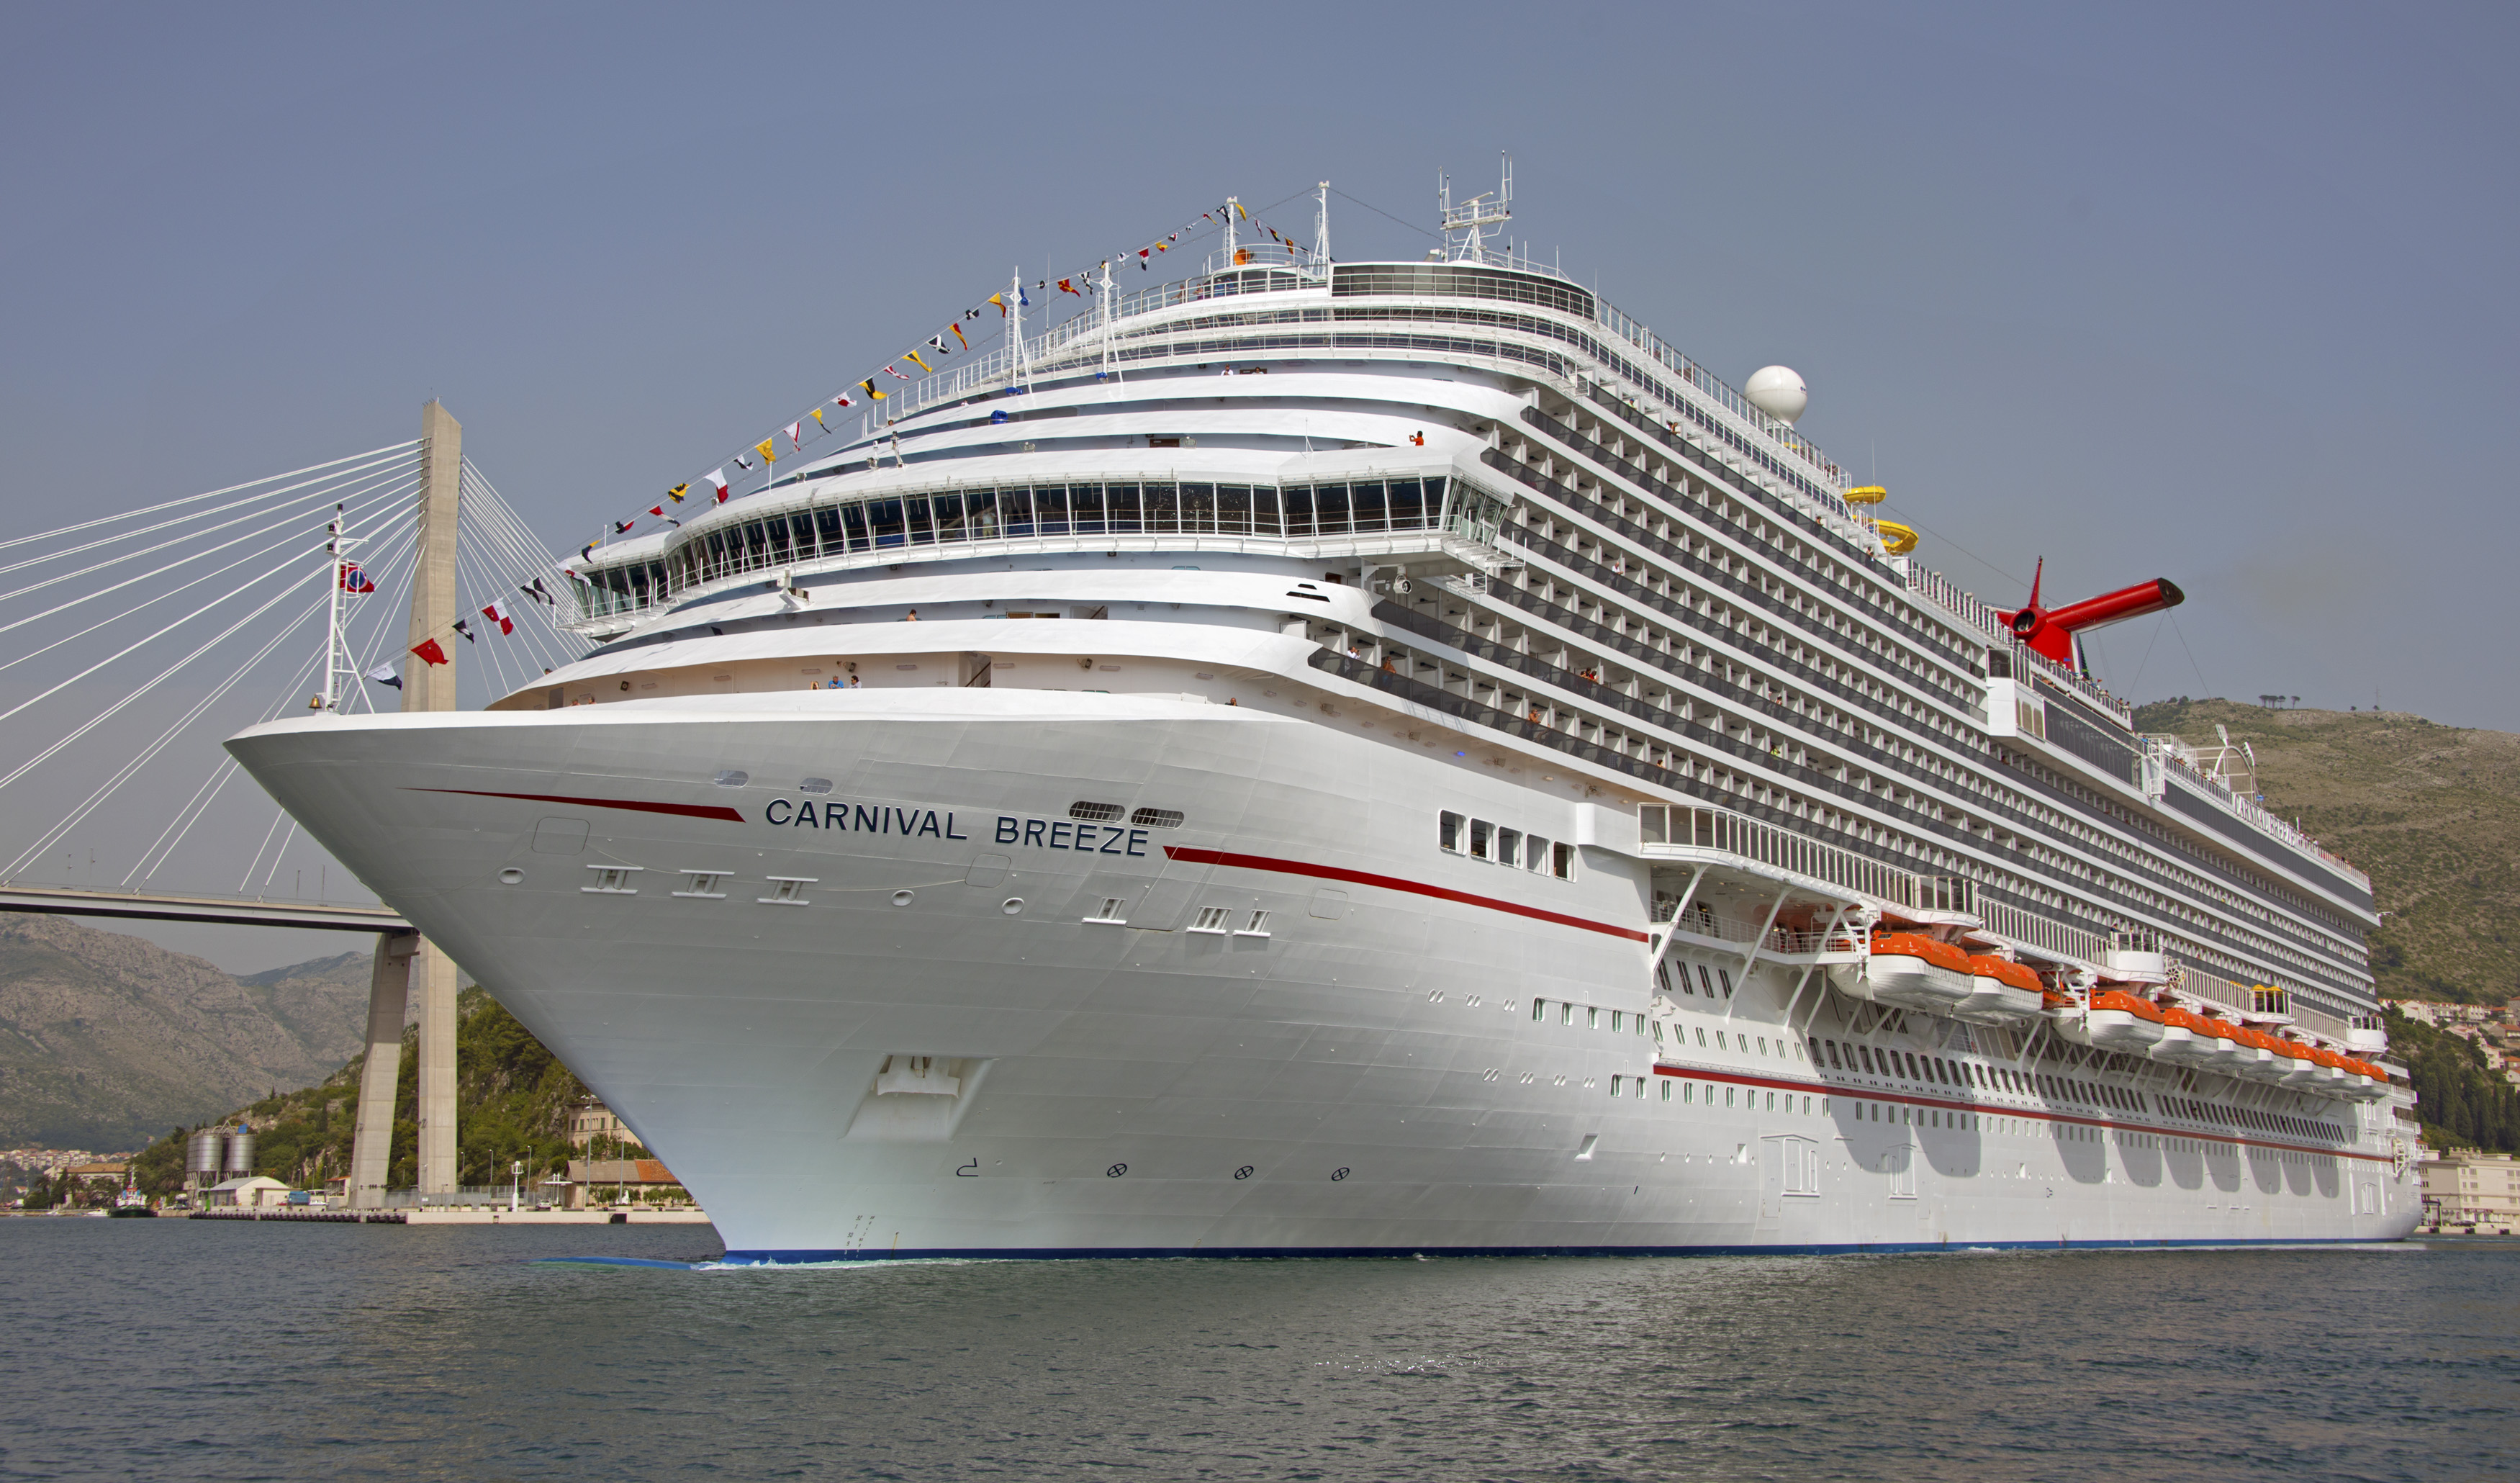 The Carnival Breeze is pictured in 2012